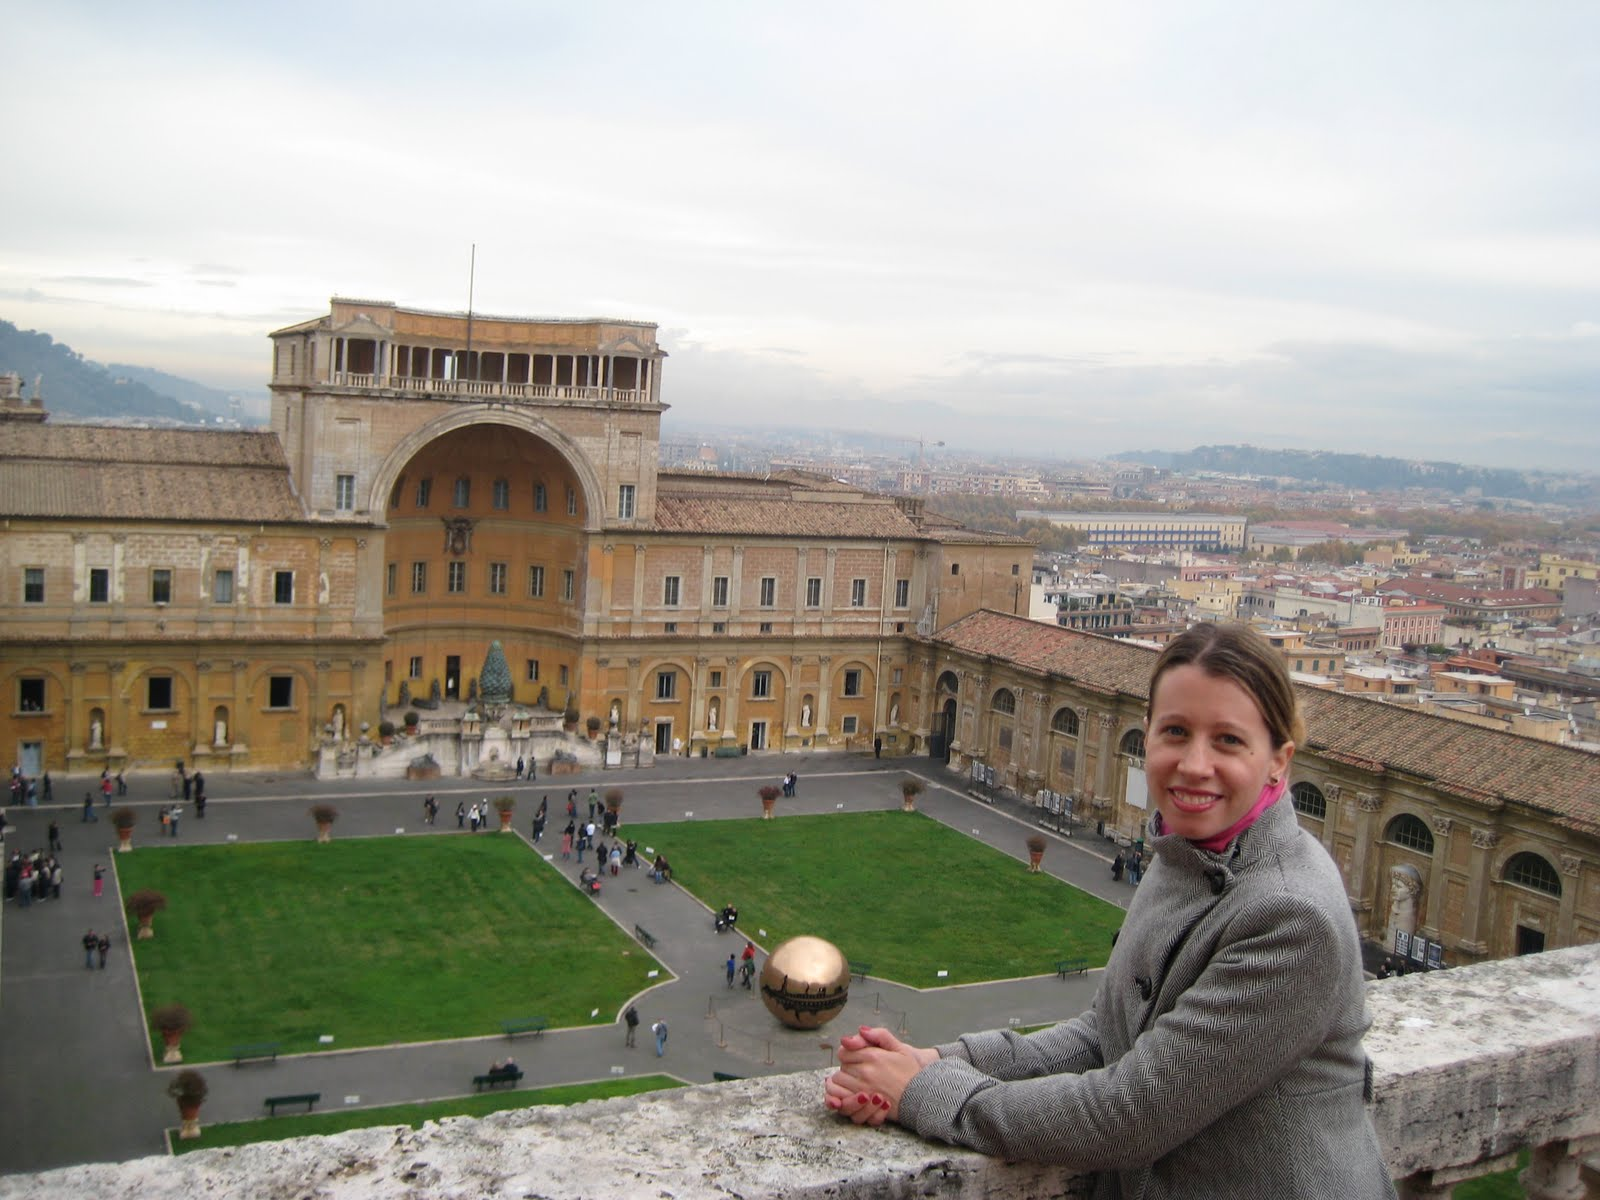 Your humble correspondant on the balcony of the Tower of Winds, Vatican